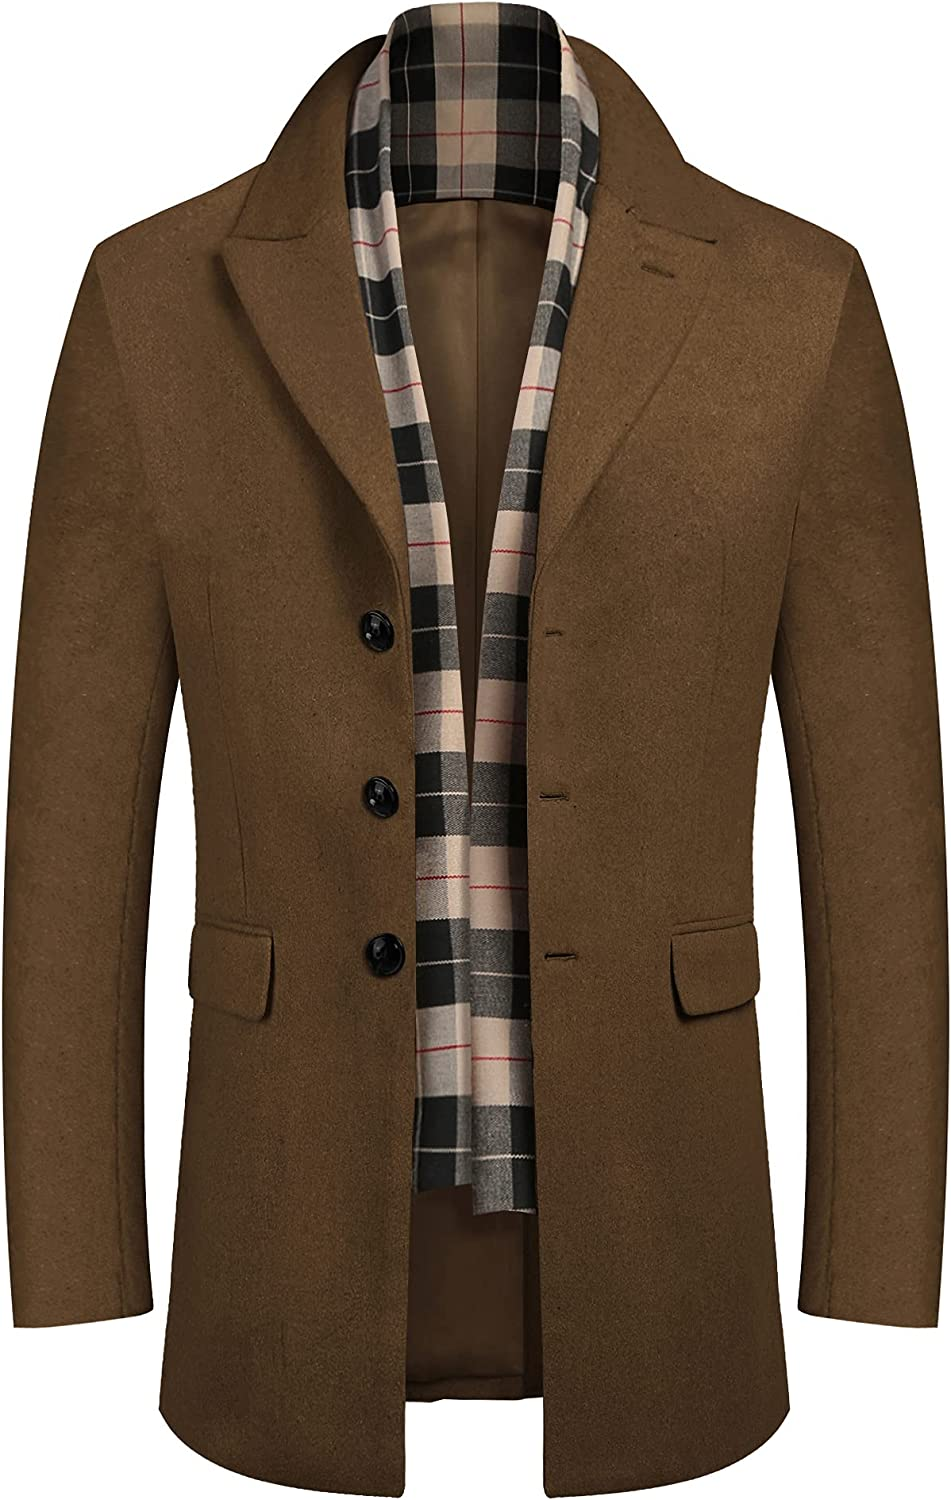 COOFANDY Men's Short Wool Blend Coat Notched Collar Single Breasted Pea Coat with Plaid Scarfs